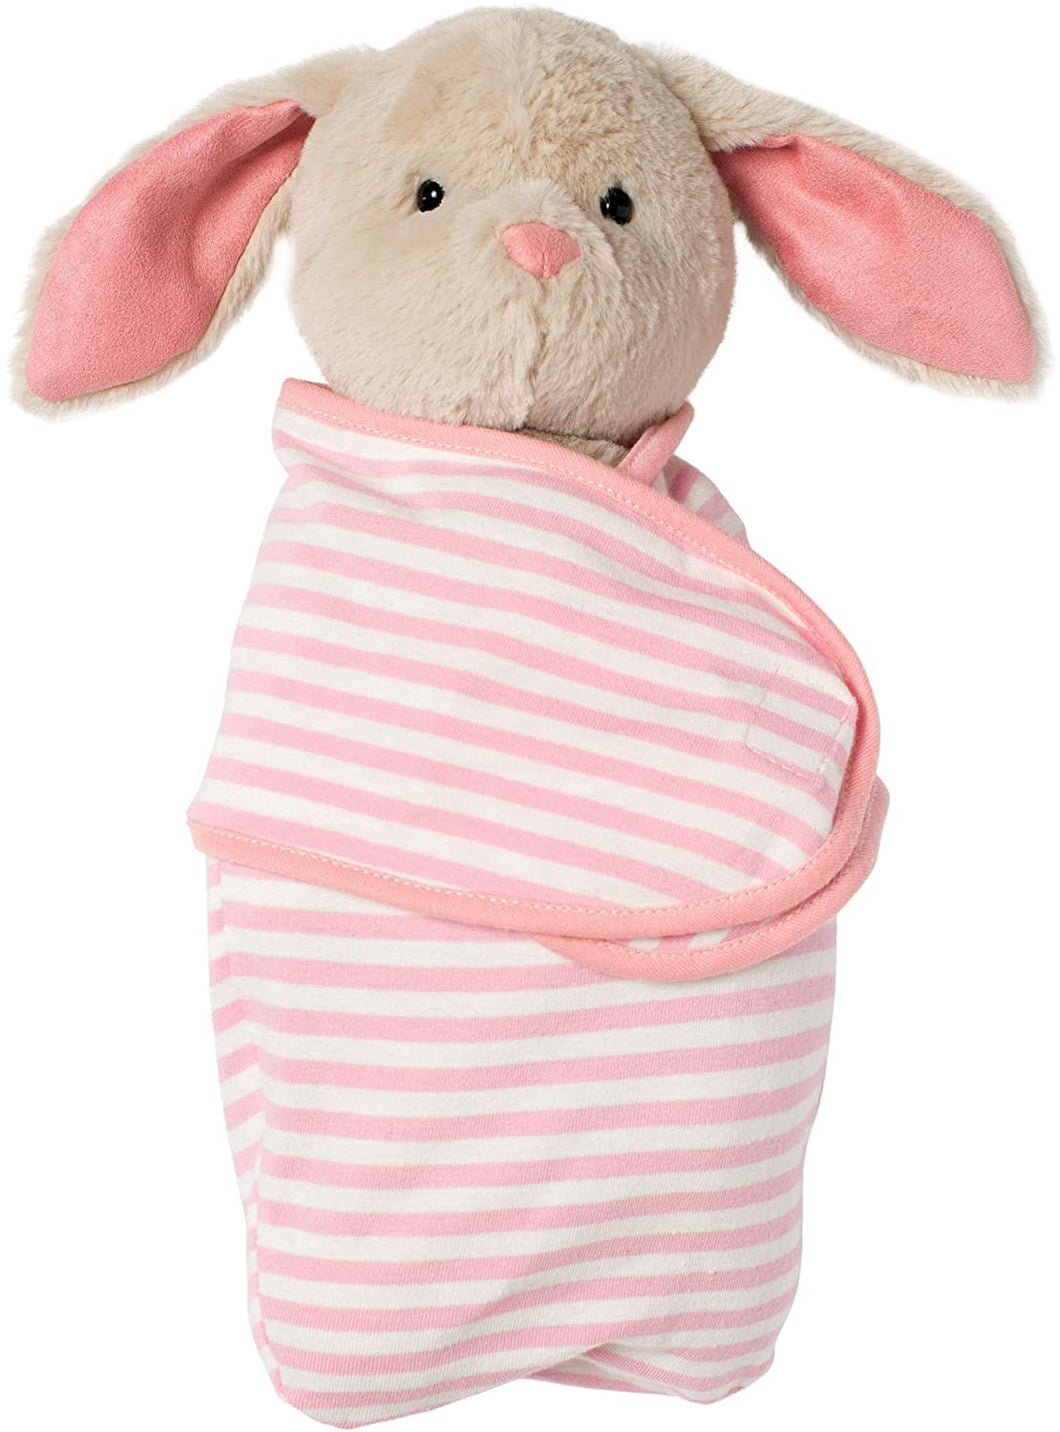 Baby Bunny Stuffed Animal with Swaddle Blanket, 11